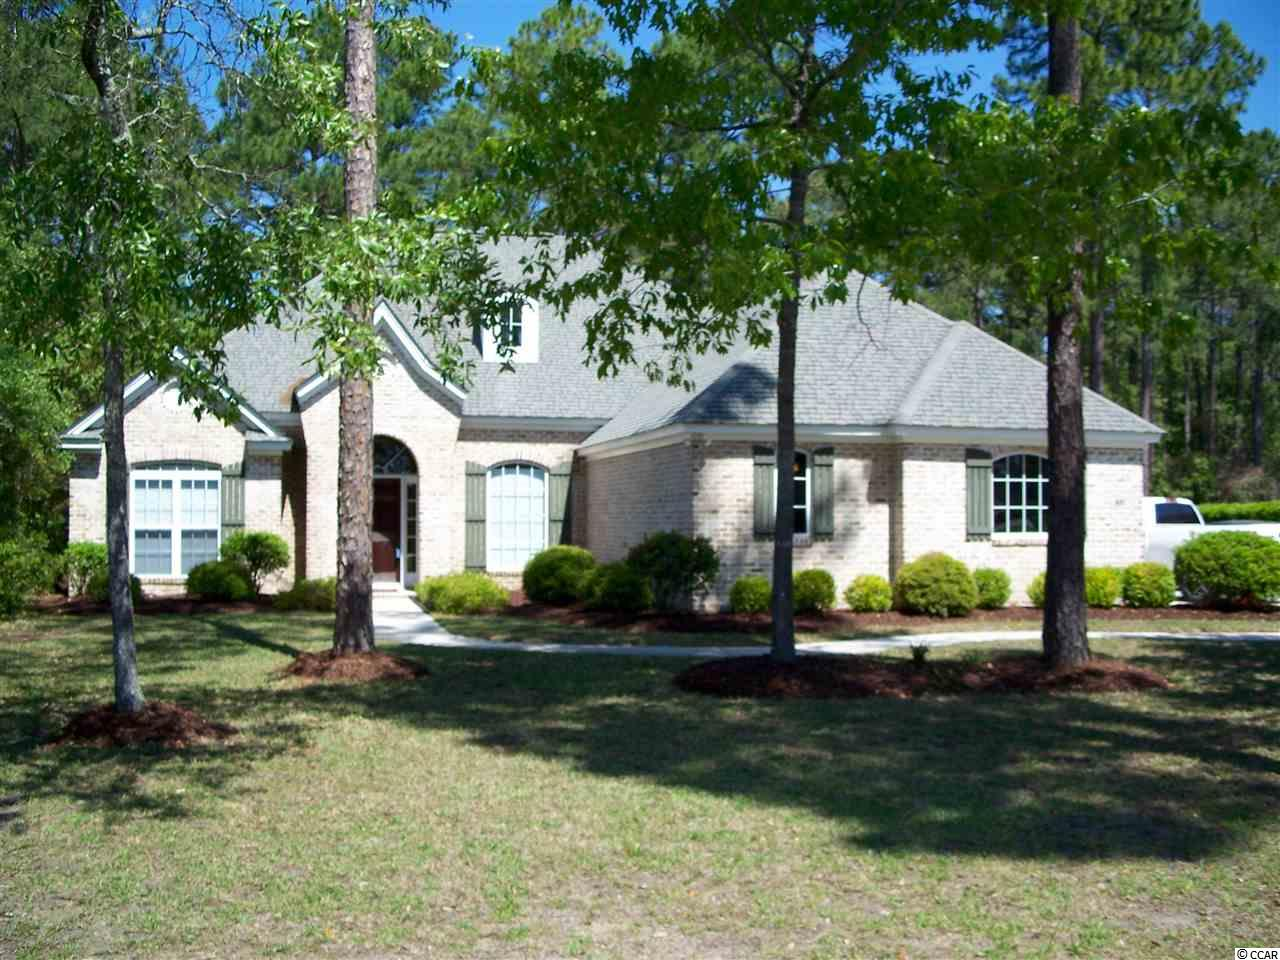 29577 4 Bedroom Home For Sale